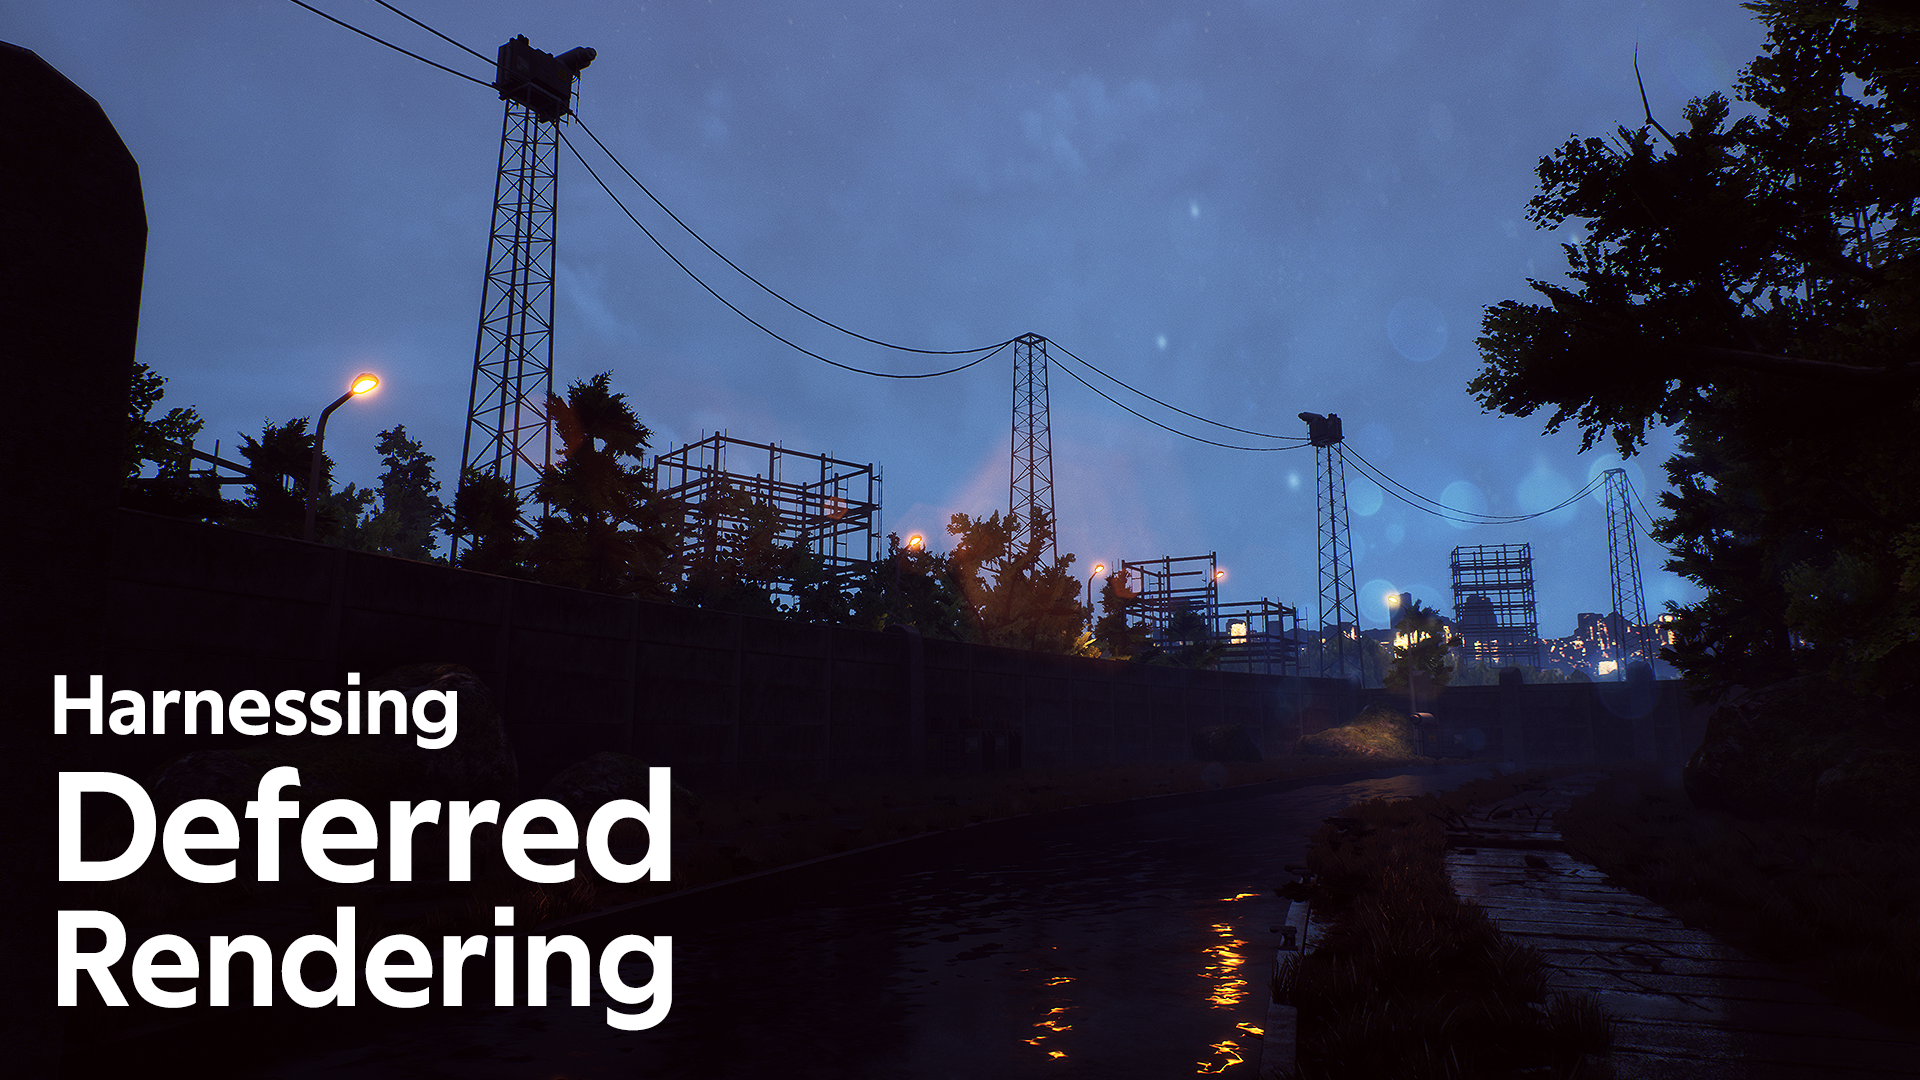 Harnessing Deferred Rendering